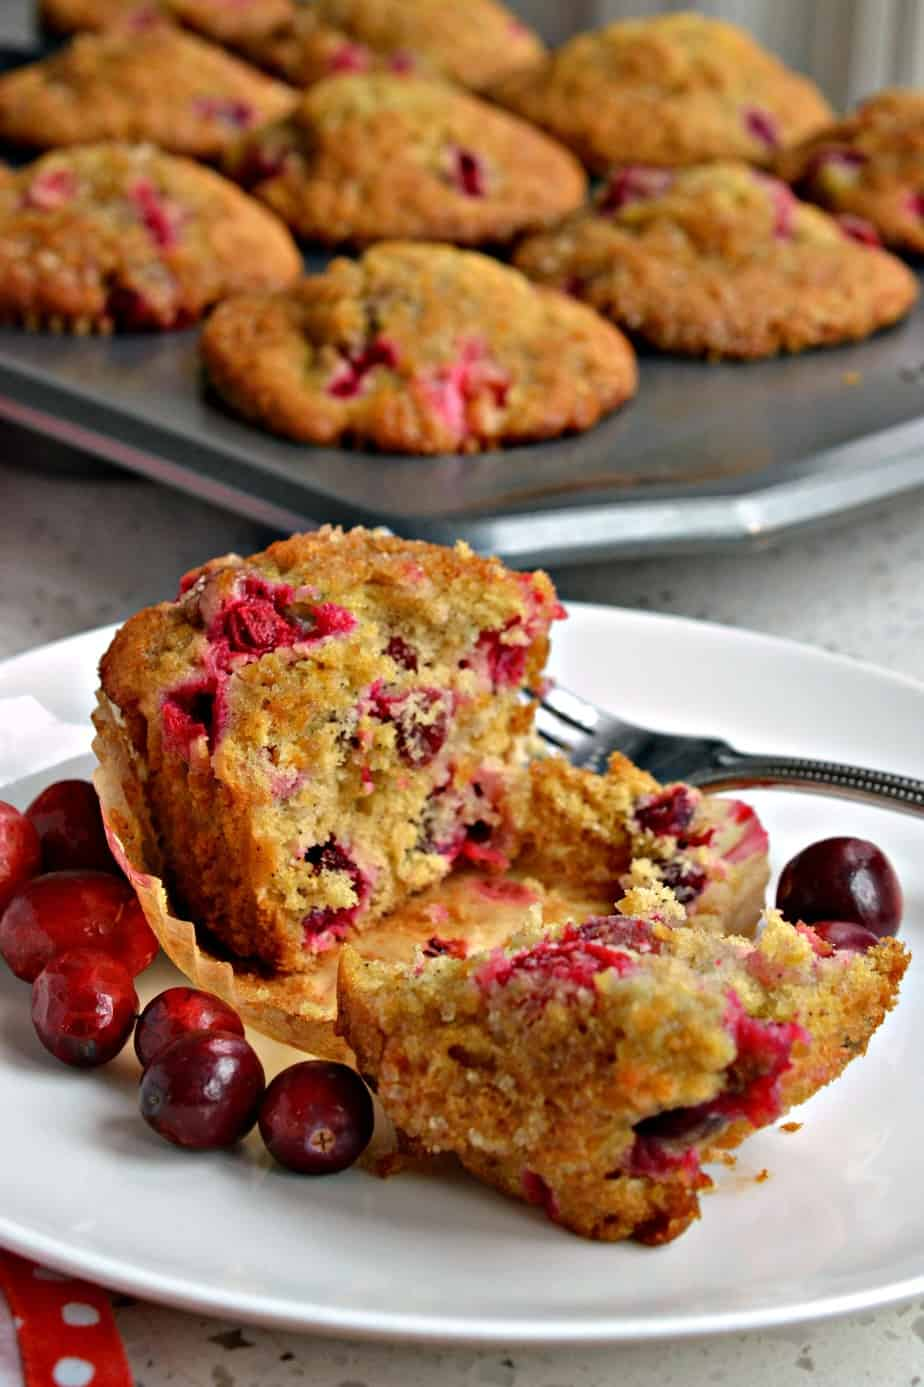 Bake a batch of Cranberry Orange Muffins today and get ready to hear all the praises.